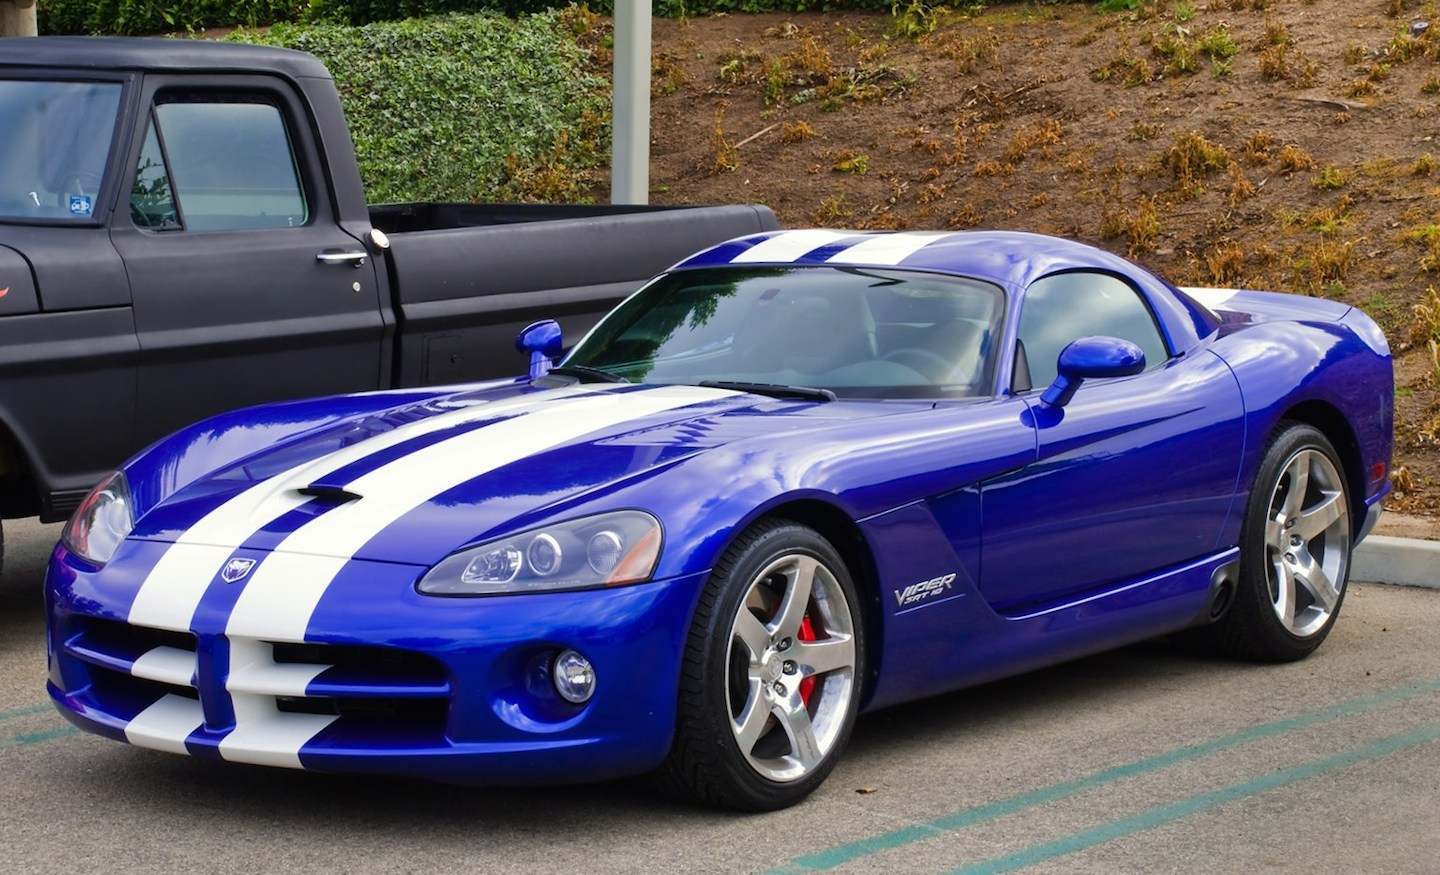 Crucial Cars: The Irrepressible Dodge Viper